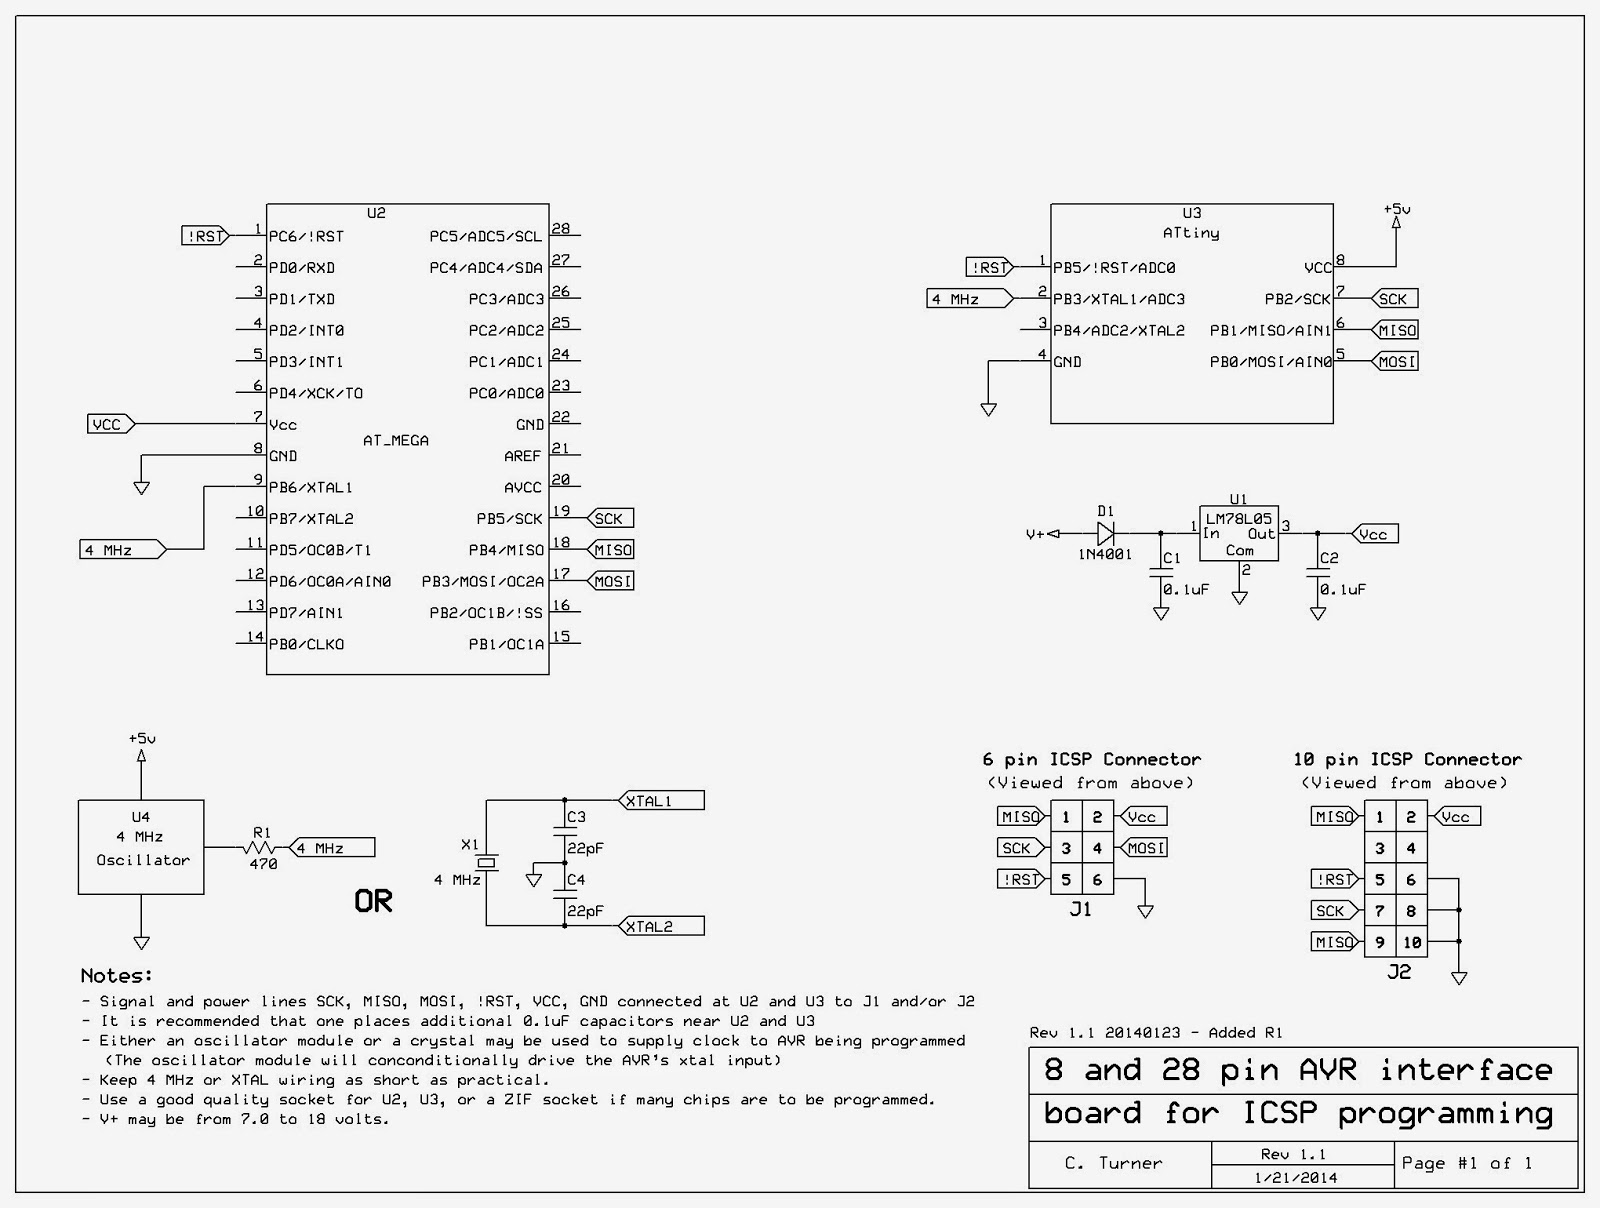 Ka7oeis Blog Atmel Avr Minimus Based Timer And Solid State Relay Control For Uv Schematic Diagram Of The Icsp Interface Board Click On Image A Larger Version